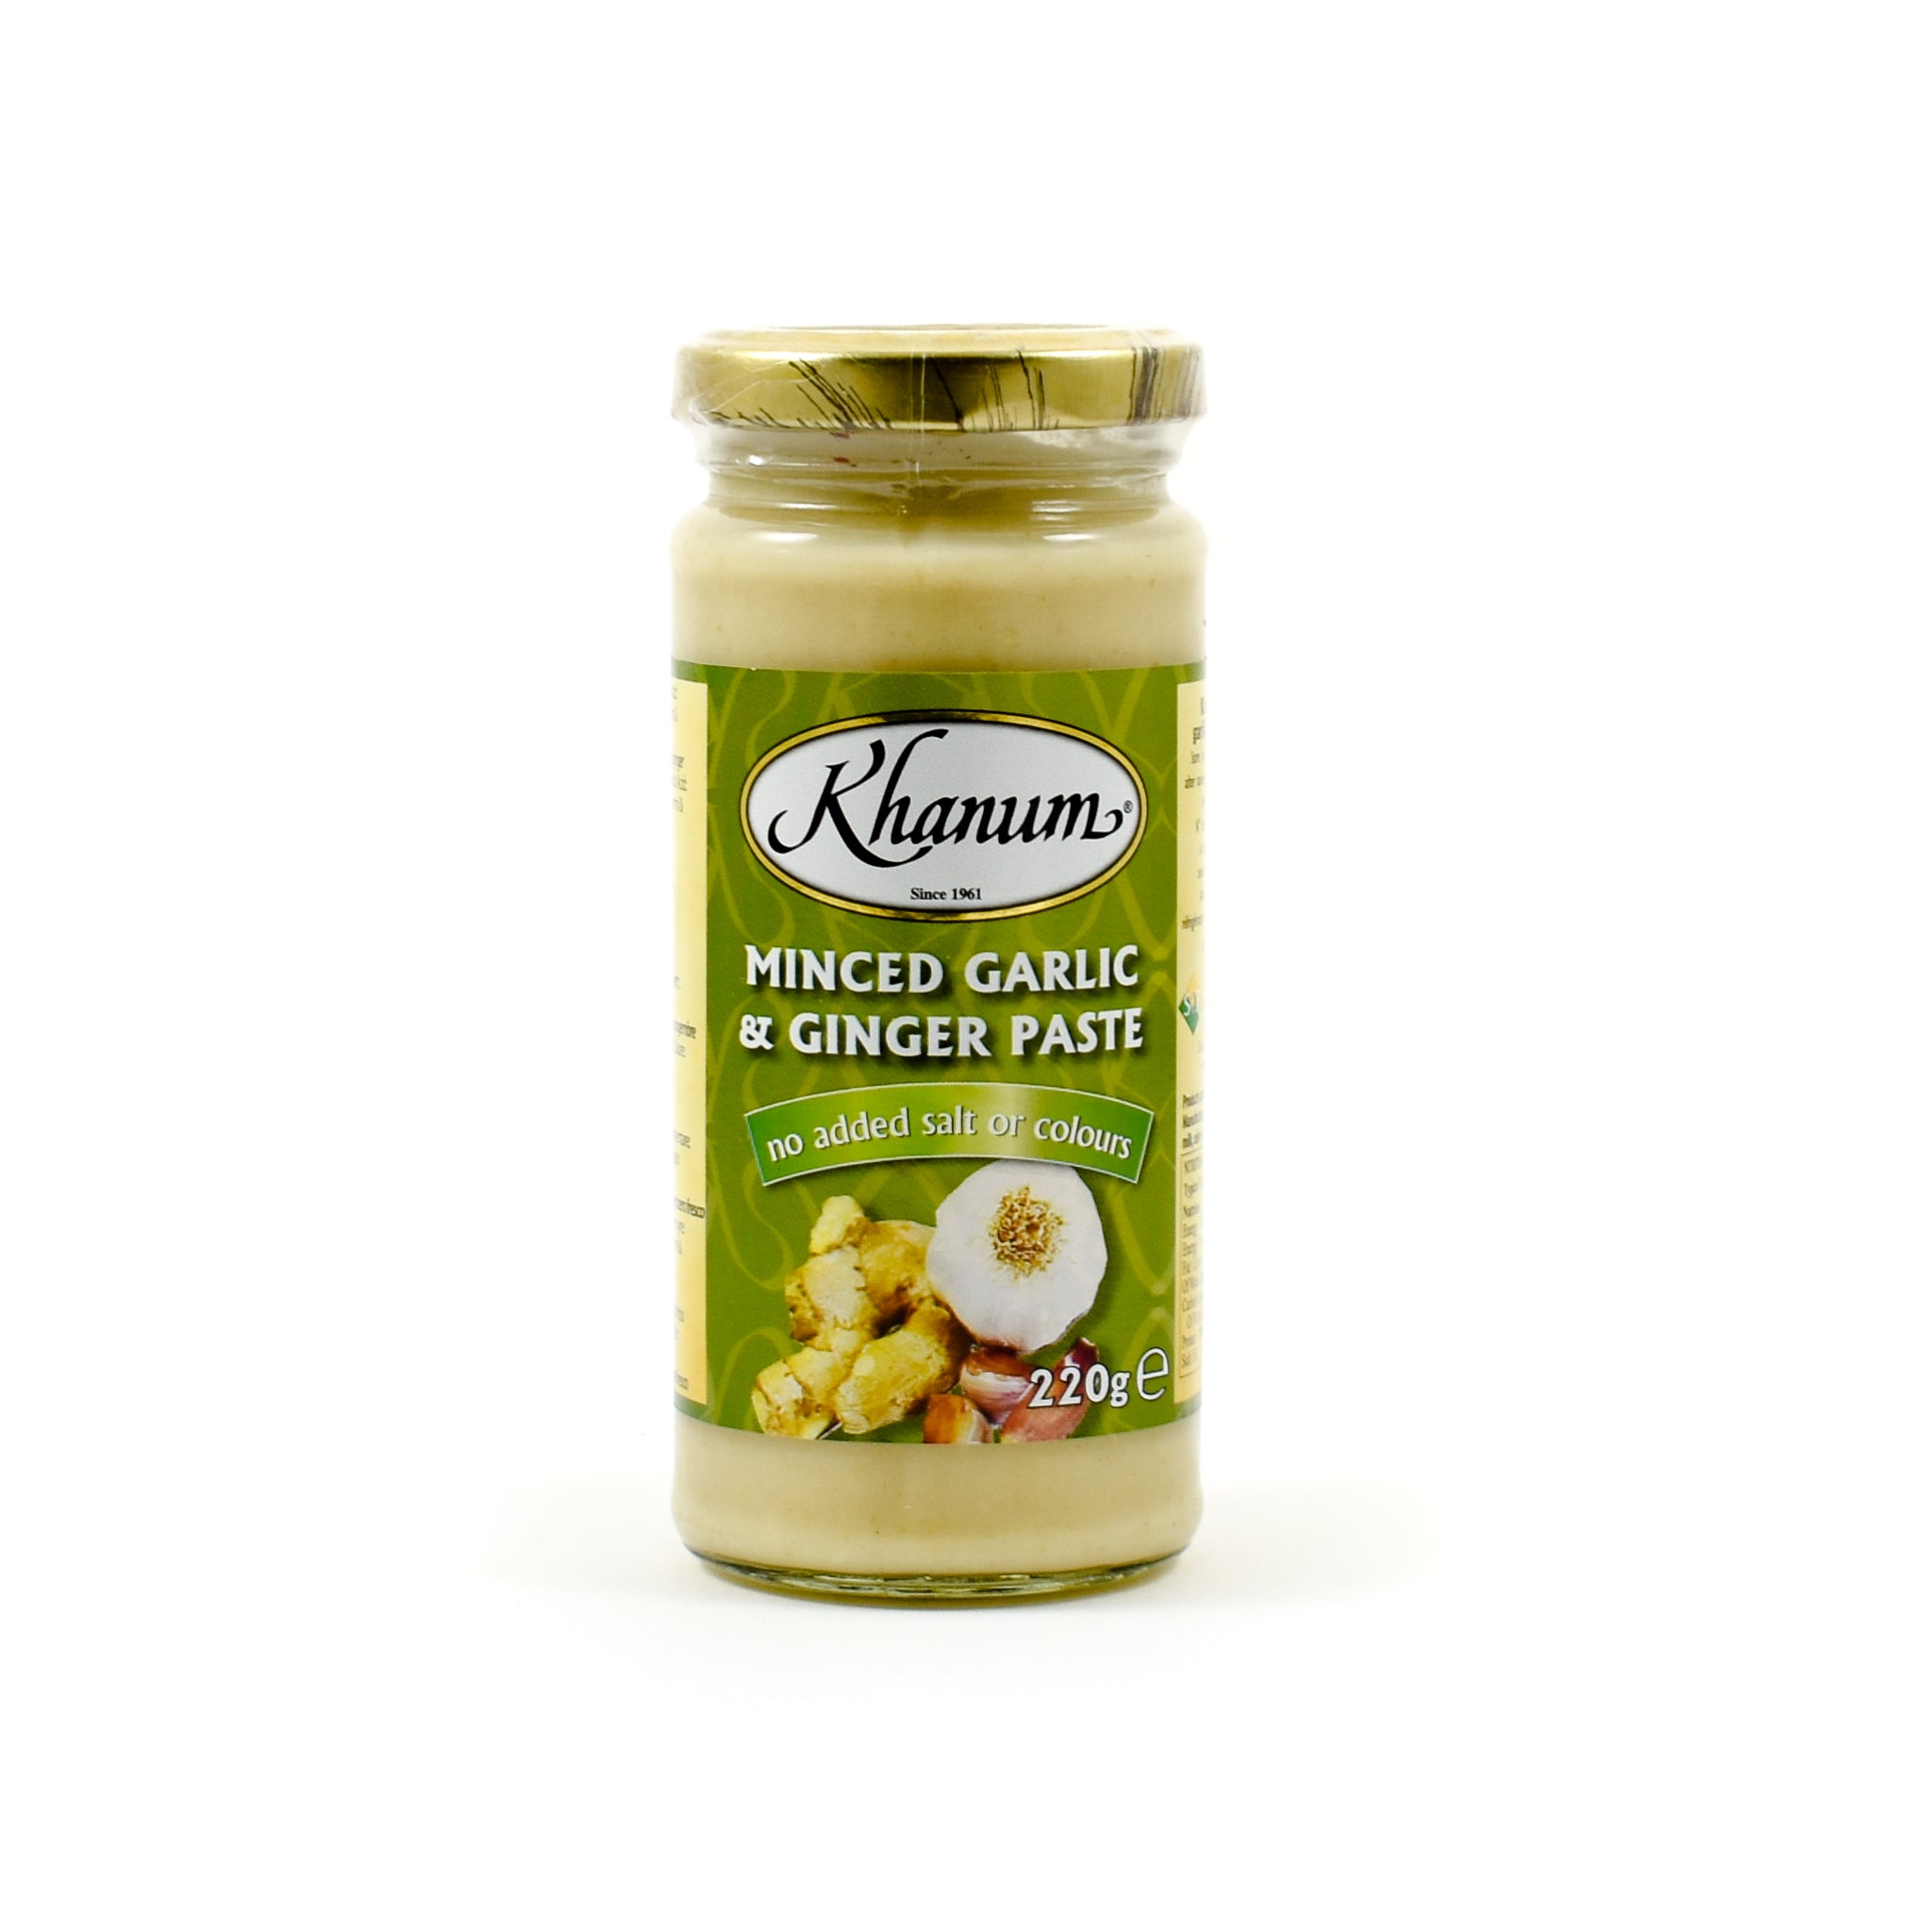 Khanum Minced Garlic & Ginger 220g Ingredients Sauces & Condiments Asian Sauces & Condiments Indian Food